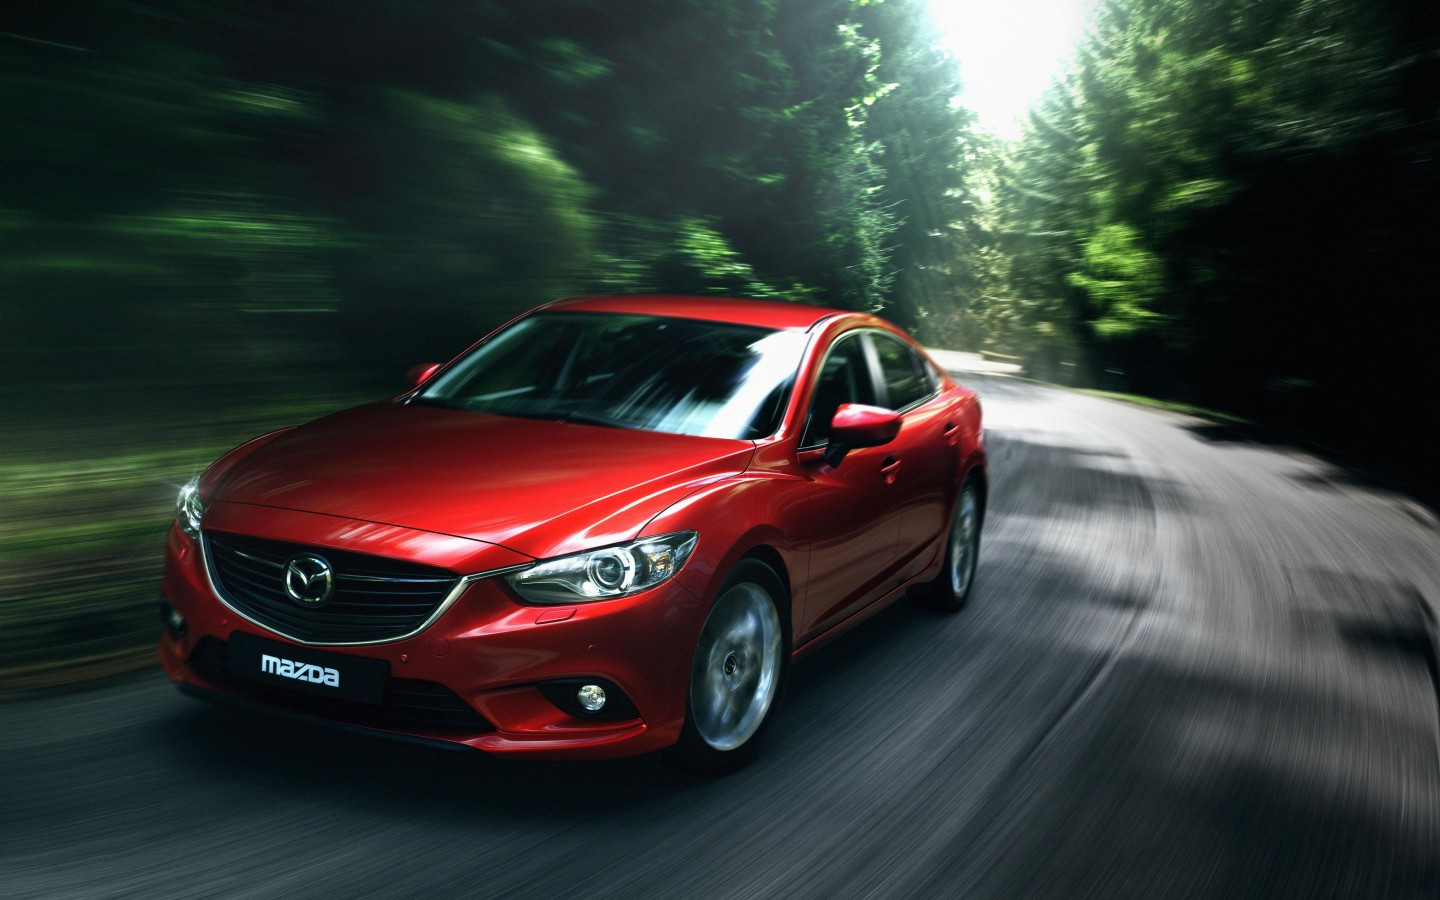 2014 Mazda6 Sedan 05 HD Wallpaper